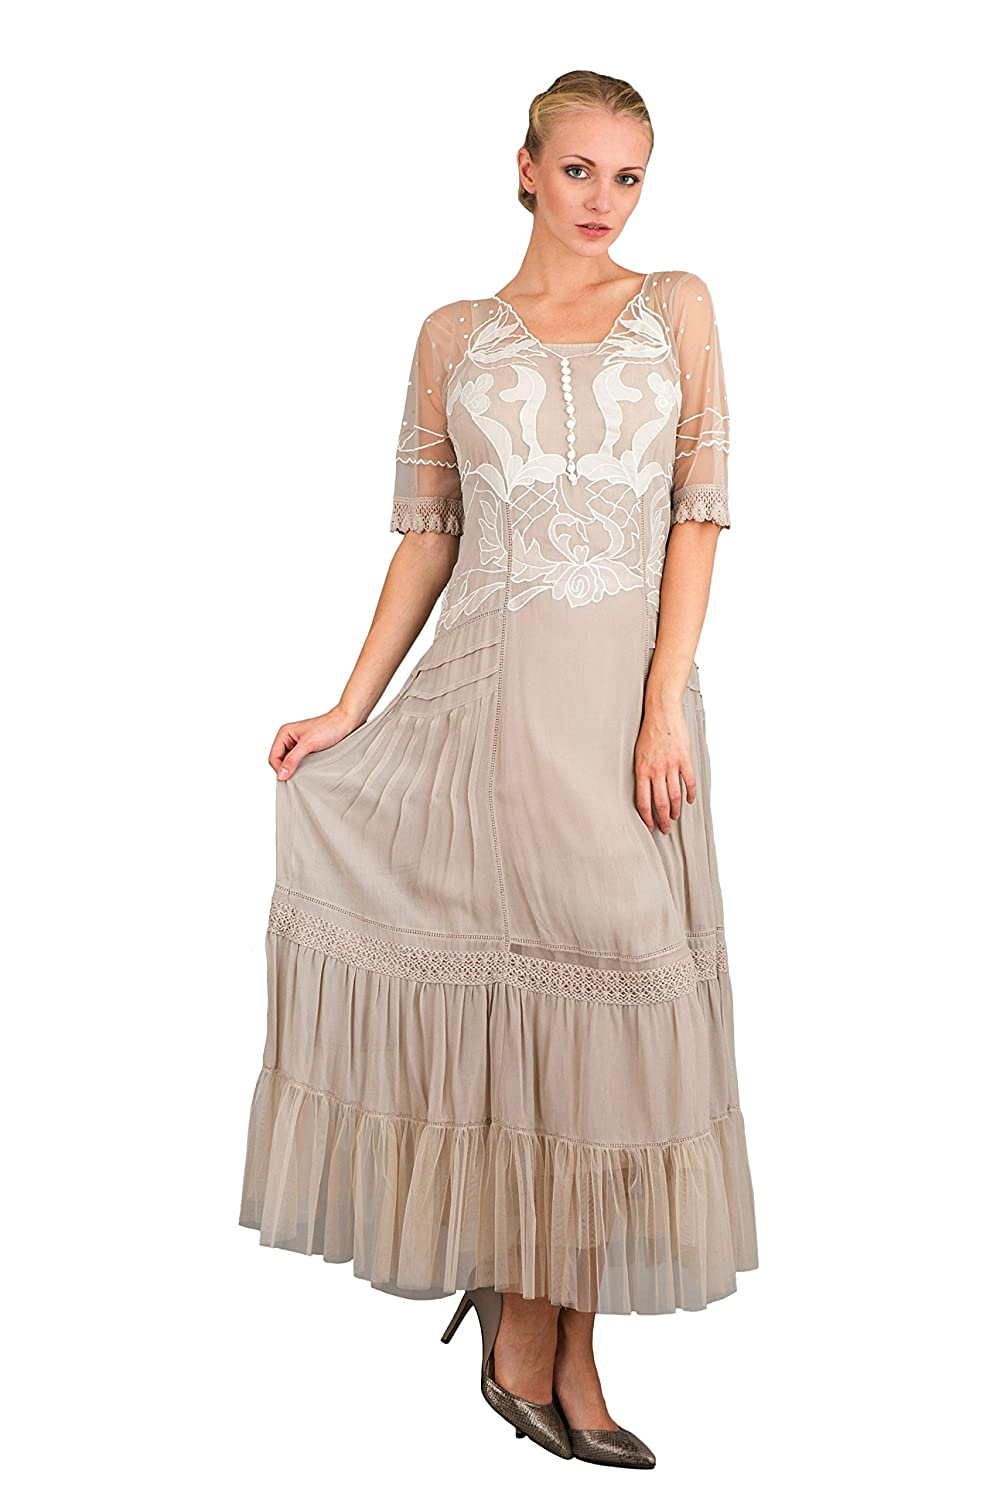 Victorian Costume Dresses & Skirts for Sale Vintage Inspired Party Dress in Antique $329.00 AT vintagedancer.com